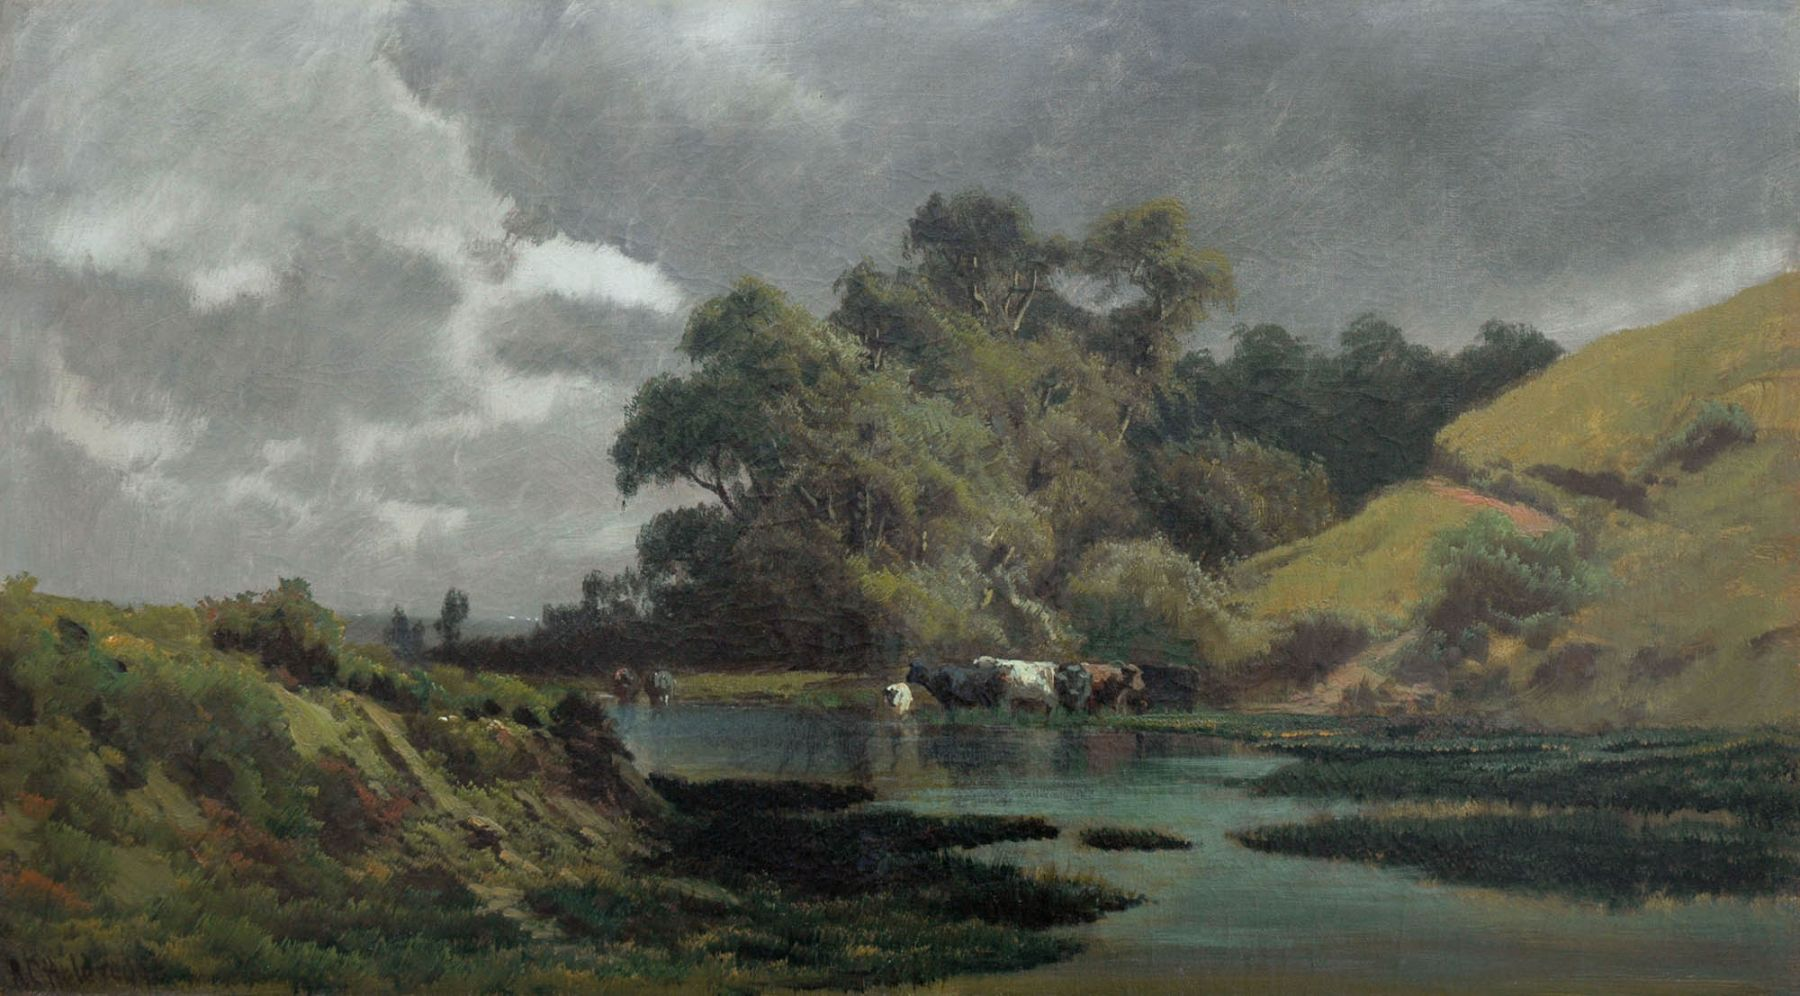 Ransome Holdredge, Landscape with Cows, 1885